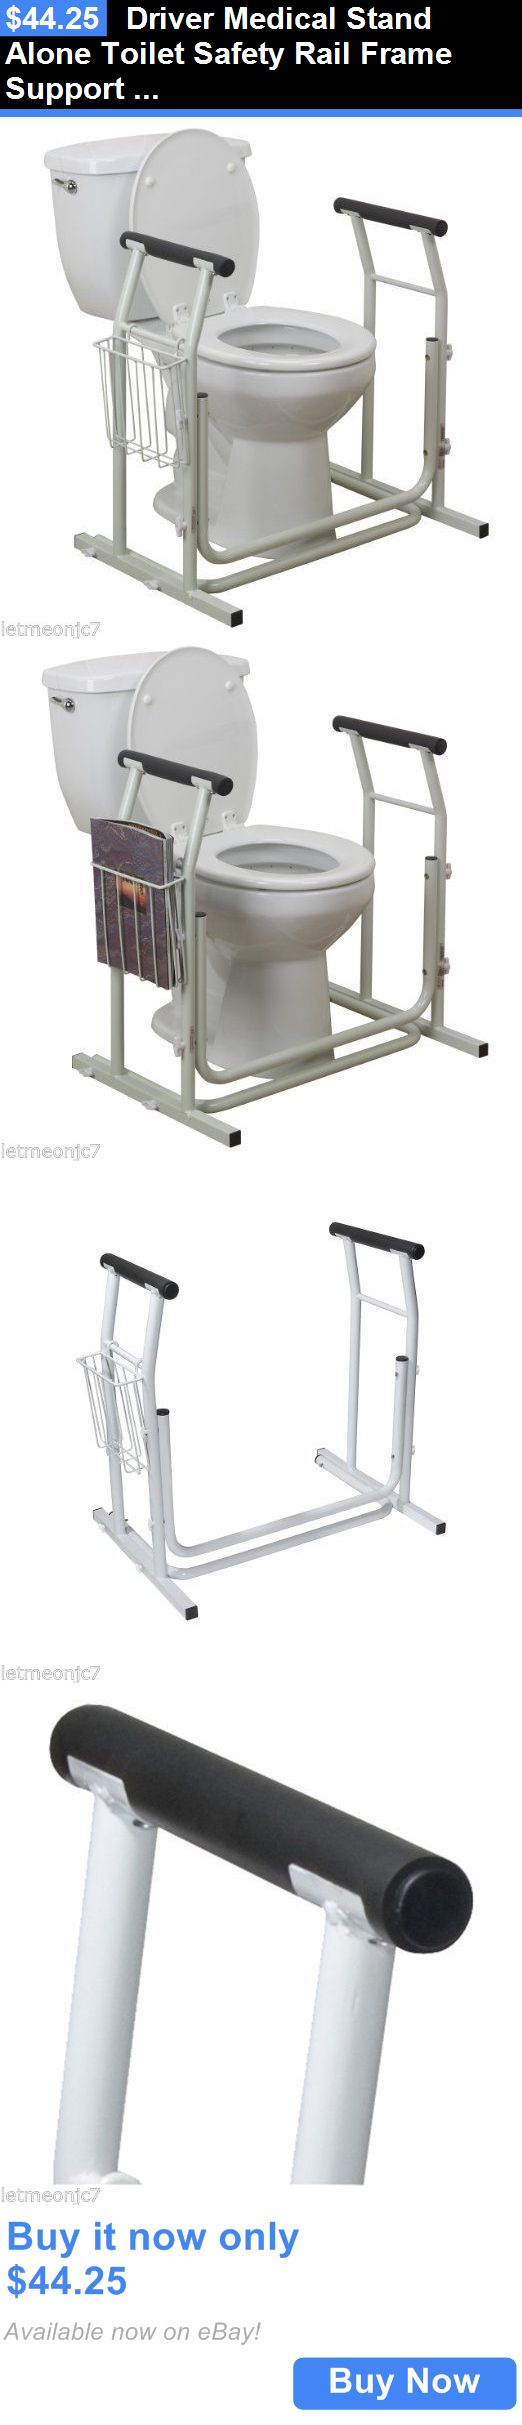 Handles and Rails: Driver Medical Stand Alone Toilet Safety Rail Frame Support Bathroom Grab Bar BUY IT NOW ONLY: $44.25